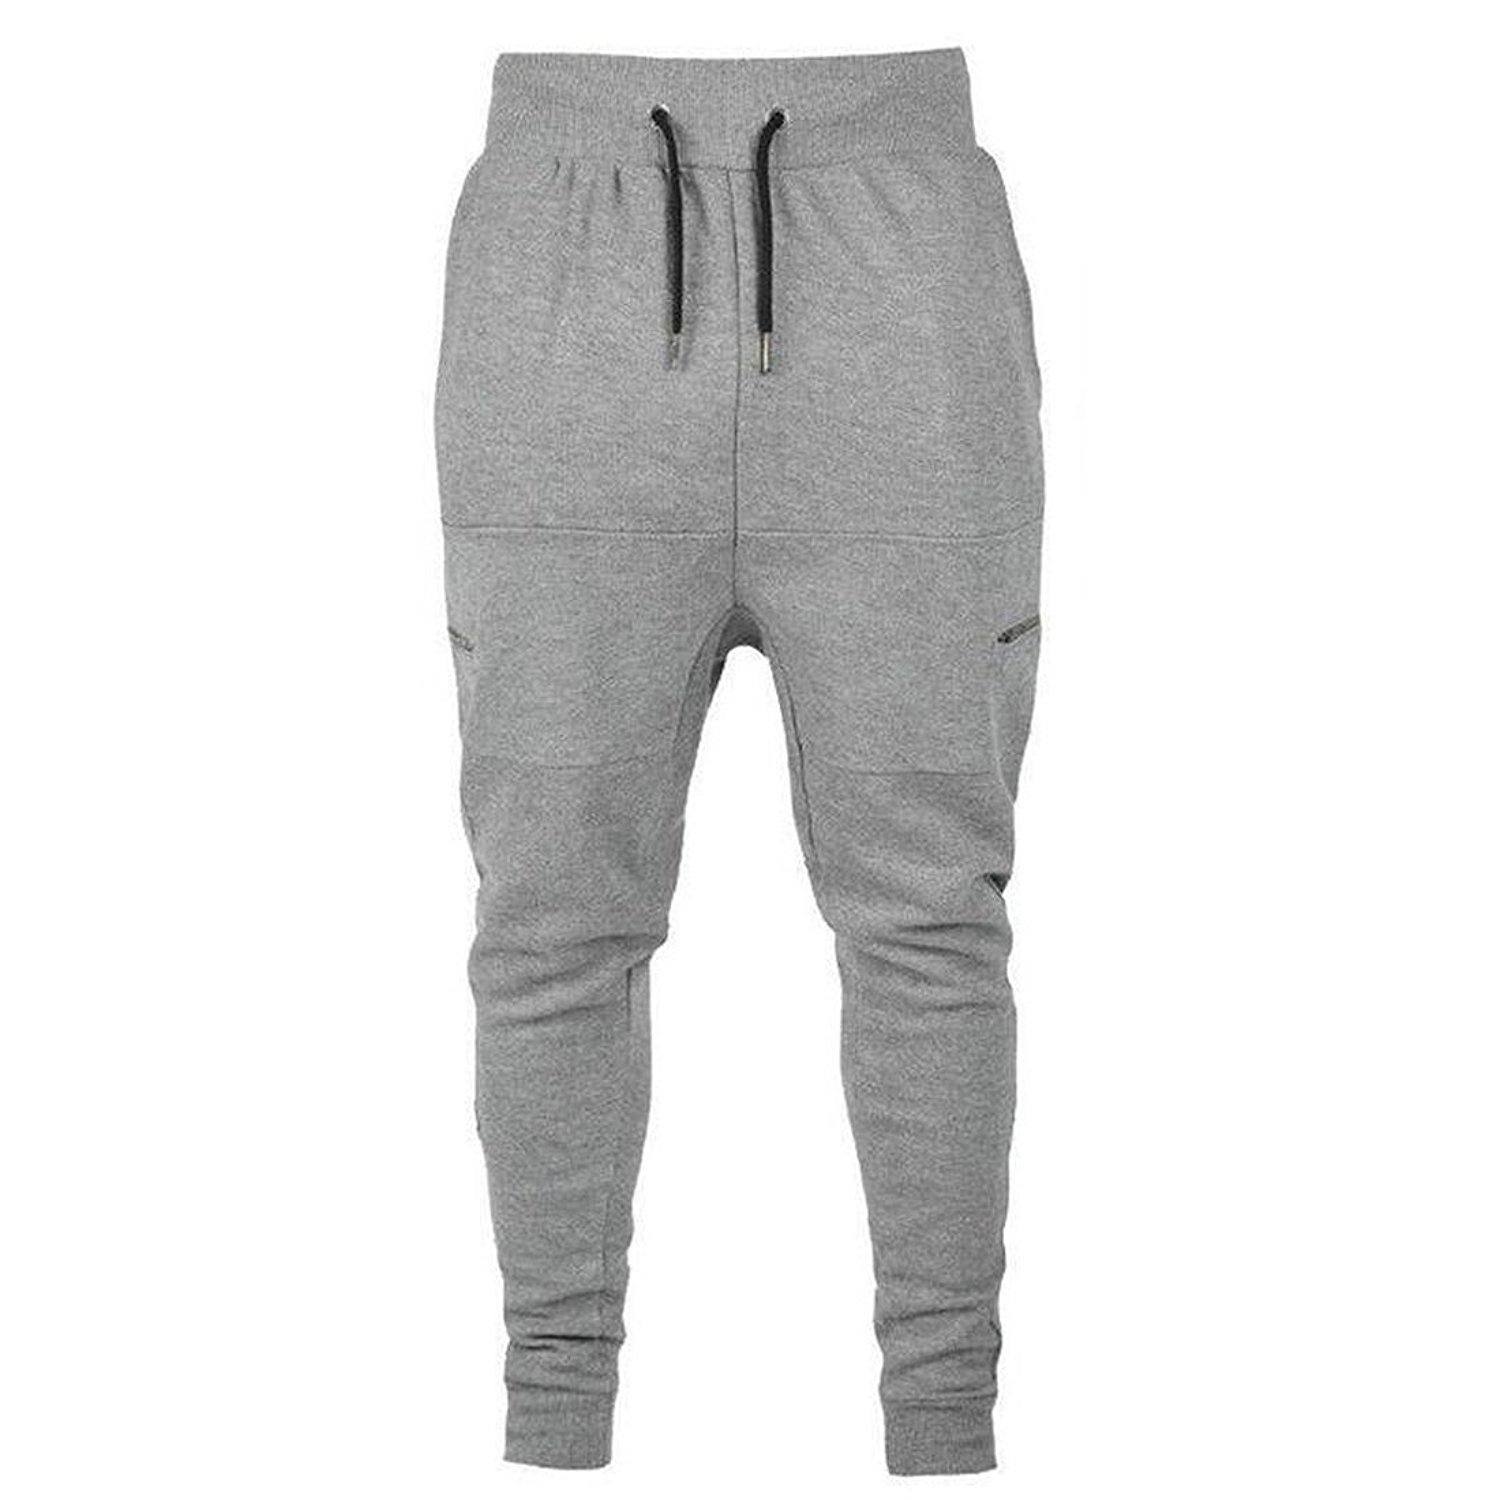 Wofupowga Mens Cuffed Stretchable Loose Casual Cozy Ankle Pants